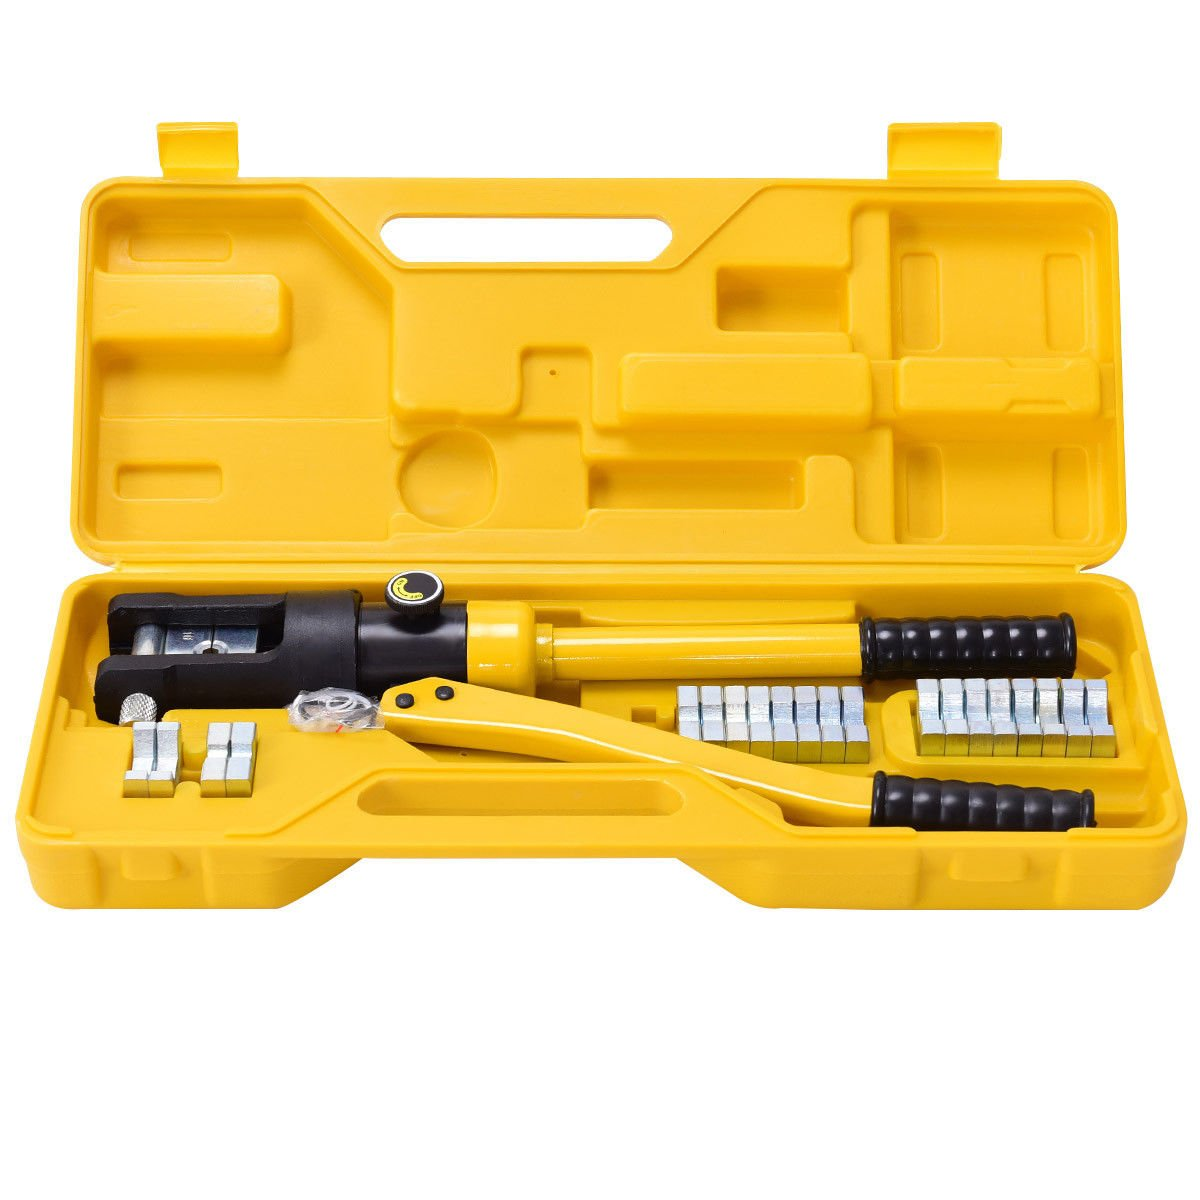 Goplus 16 Ton Hydraulic Wire Crimper Battery Cable Lug Terminal Crimping Tool w/11 Dies